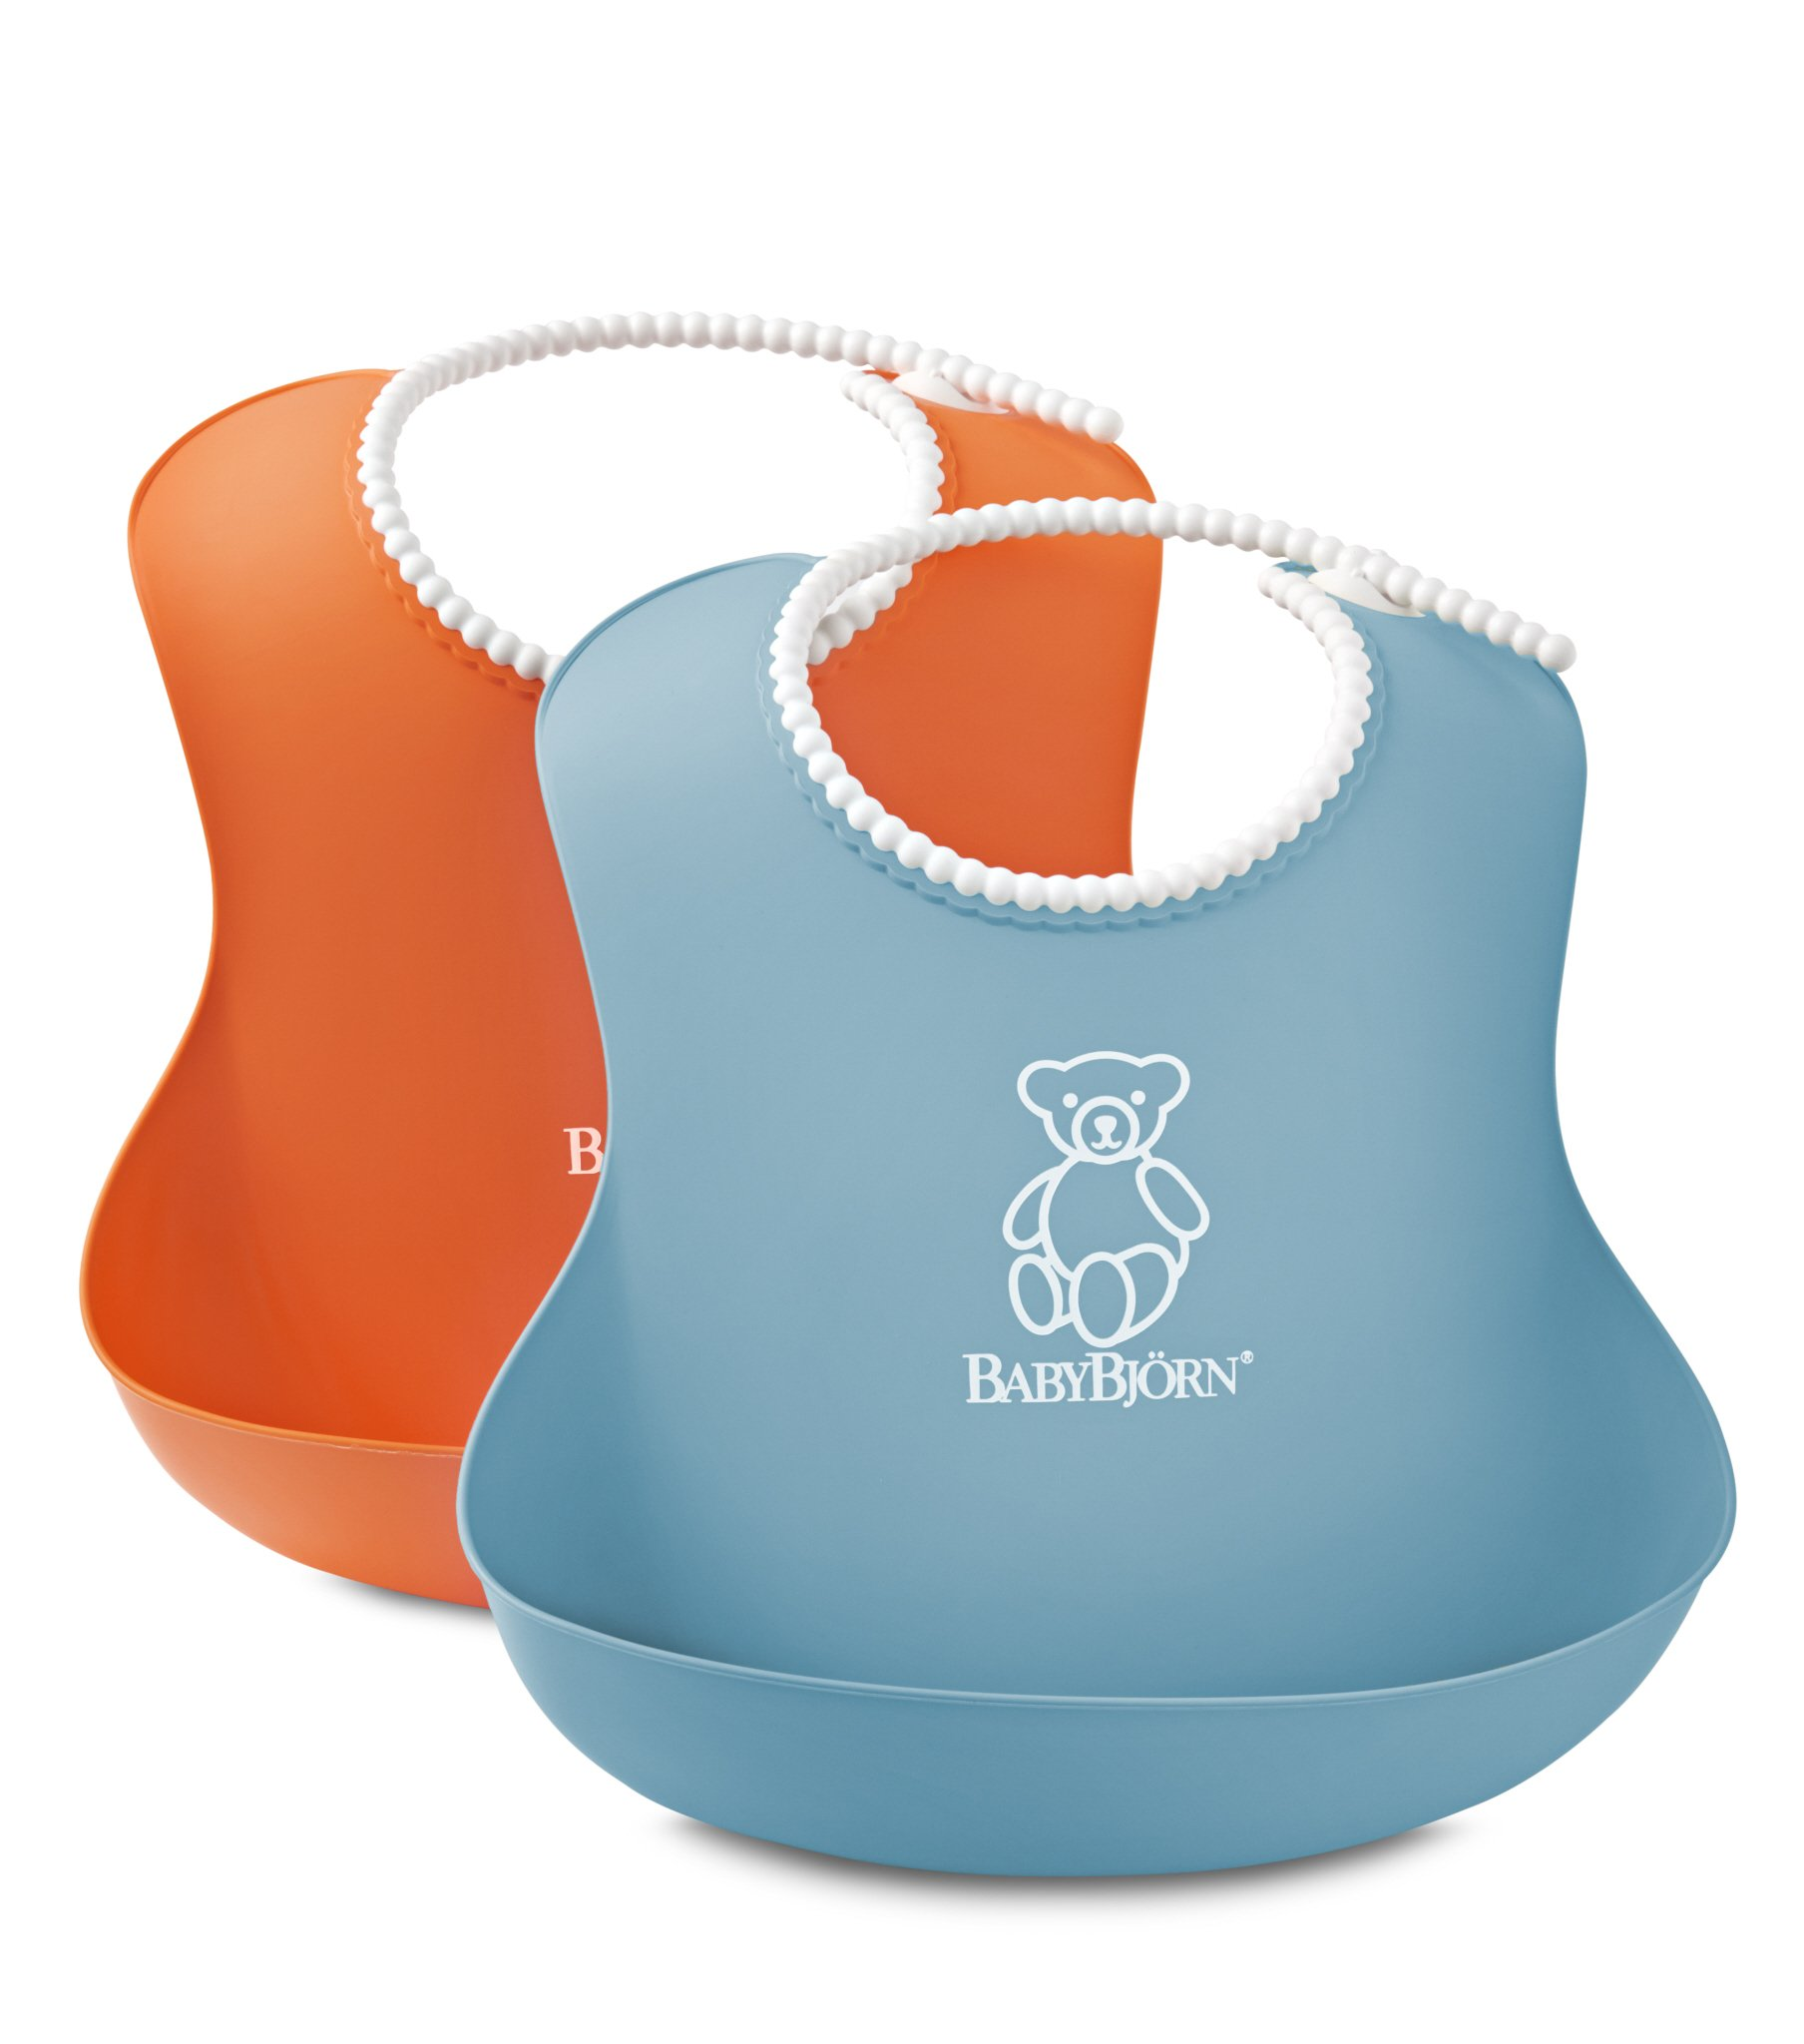 960d060f9d7 Get Quotations · BABYBJORN Soft Bib